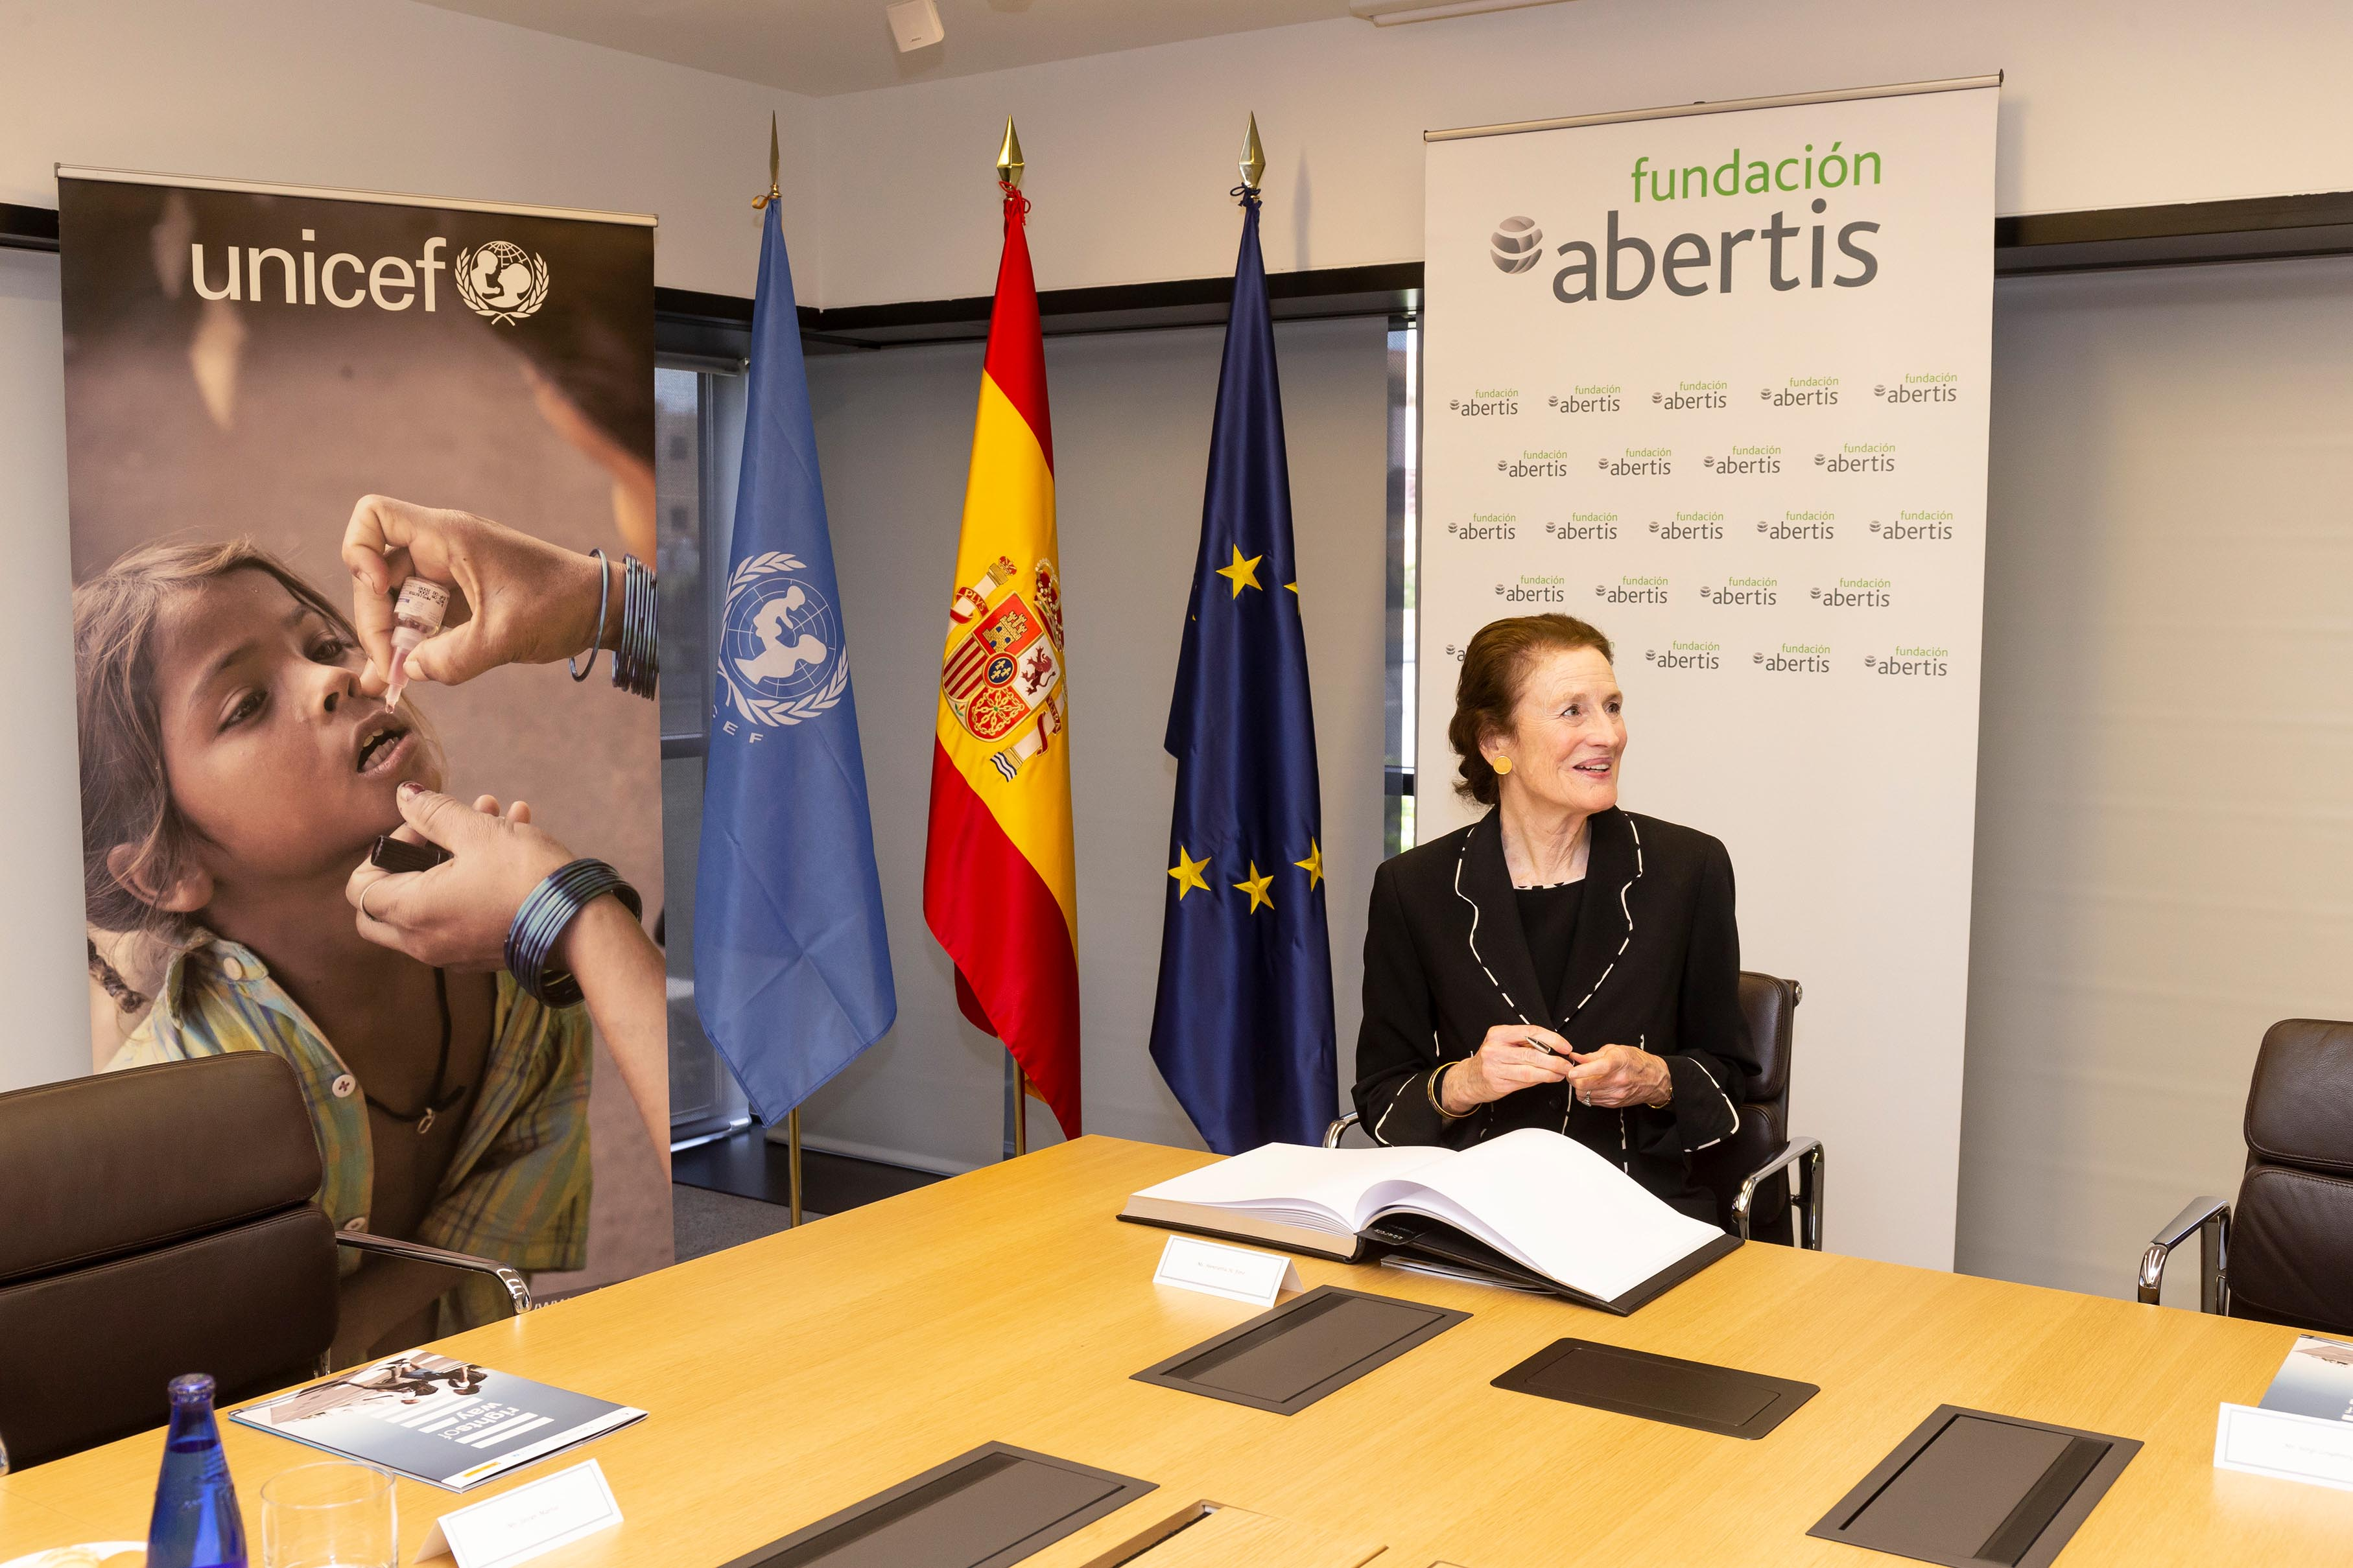 Meeting of the Abertis Foundation with Henrietta H. Fore, Executive Director of UNICEF